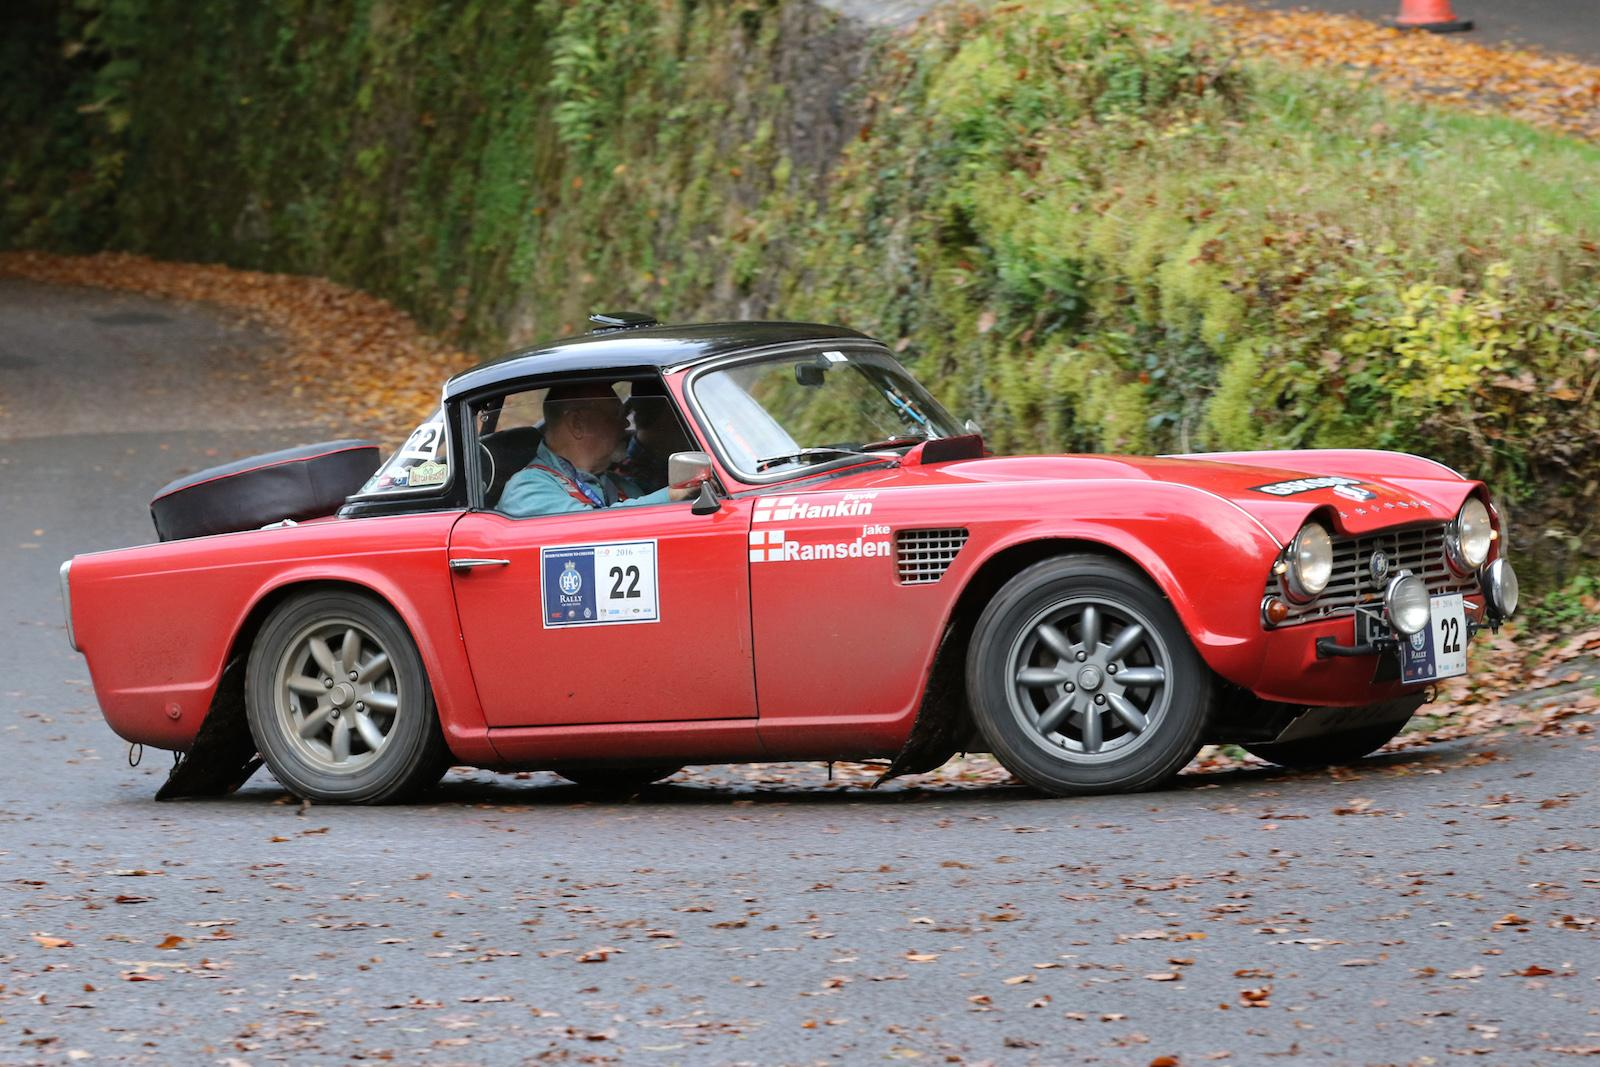 Historic Motorsport Round-up: HERO rally demand flying high